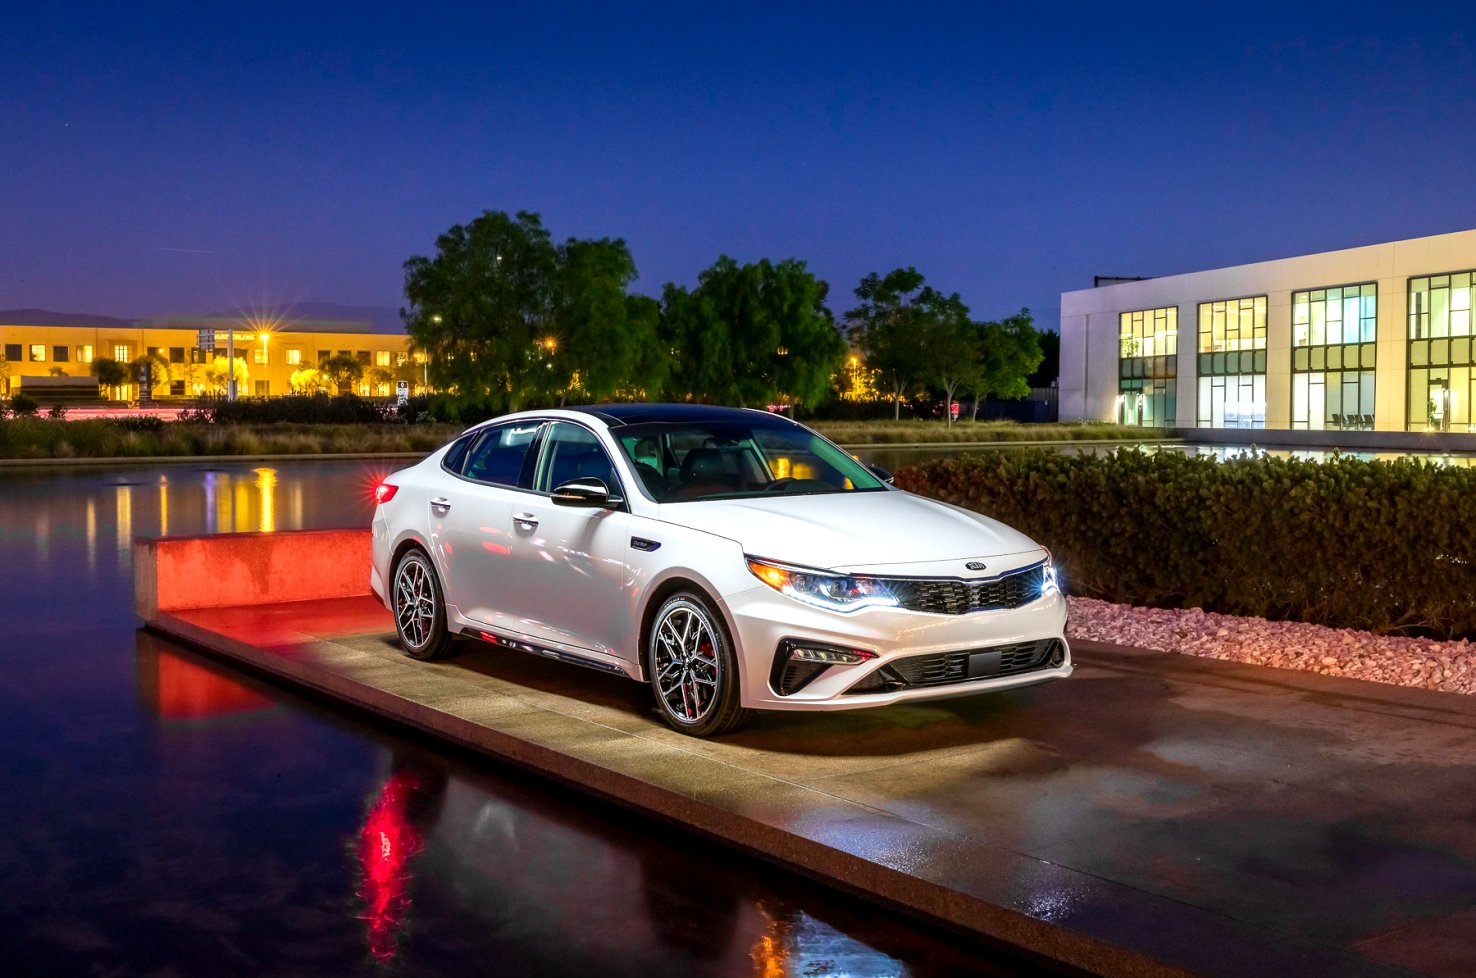 2020 kia cars Price